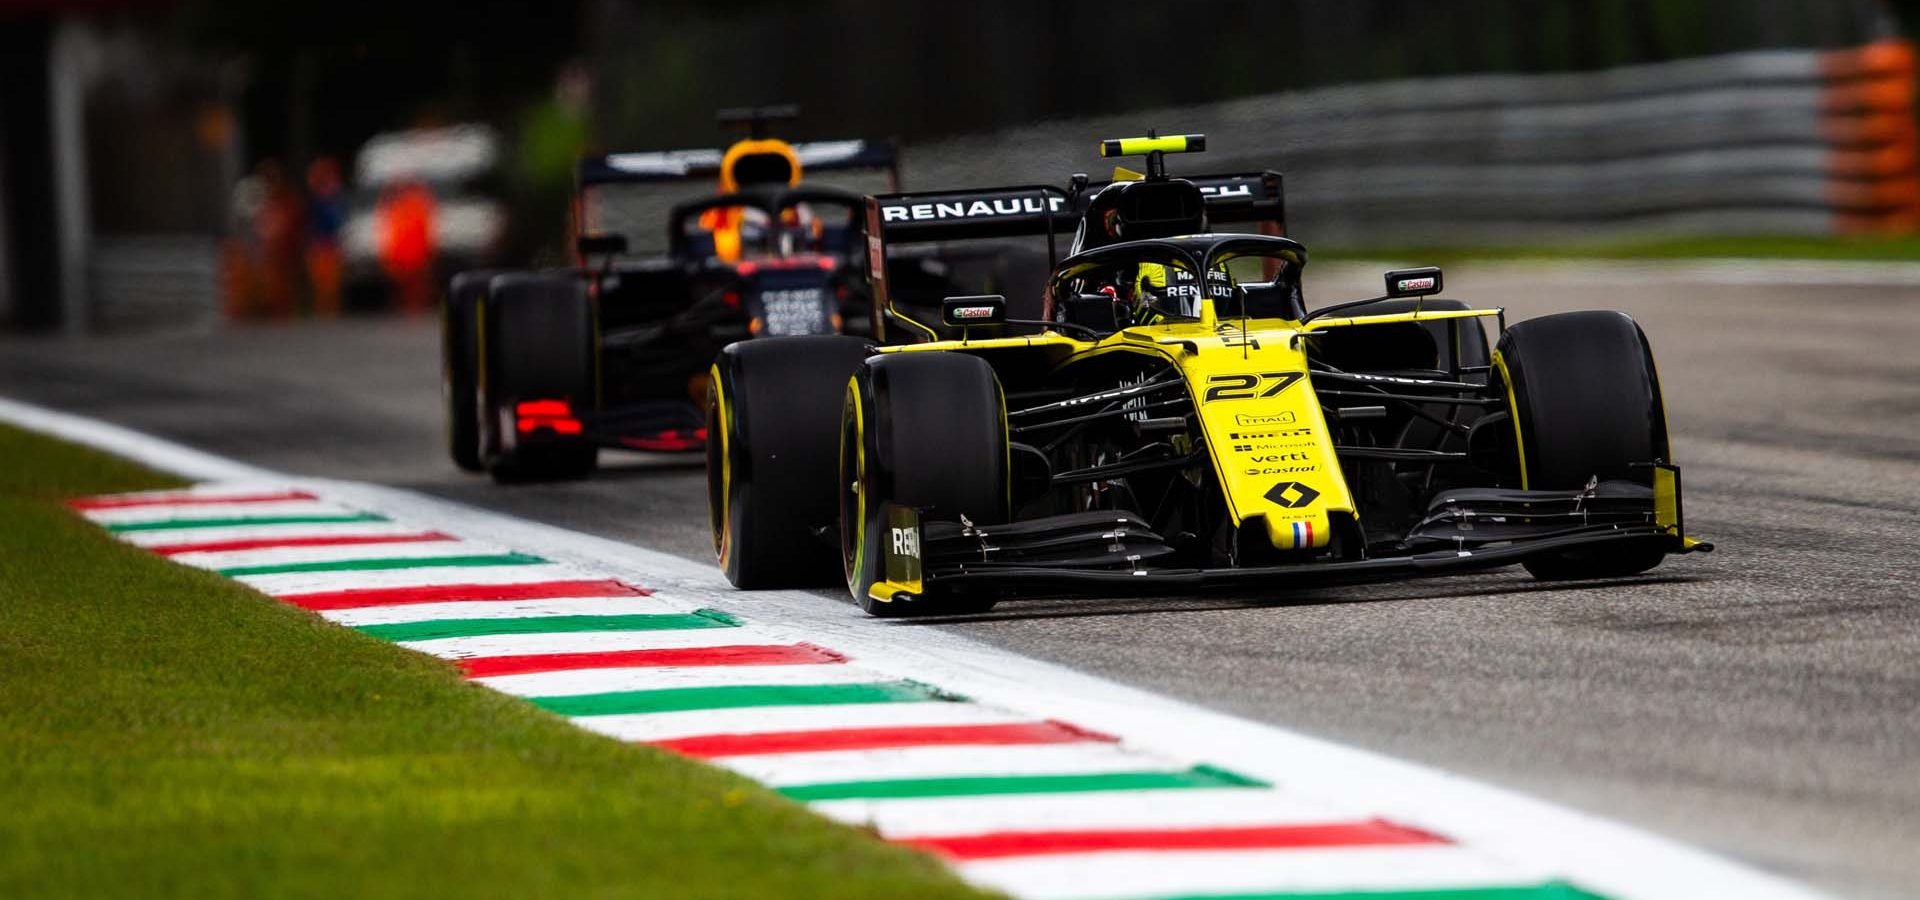 Nico Hülkenberg (GER) Renault F1 Team RS19. Italian Grand Prix, Friday 6th September 2019. Monza Italy.